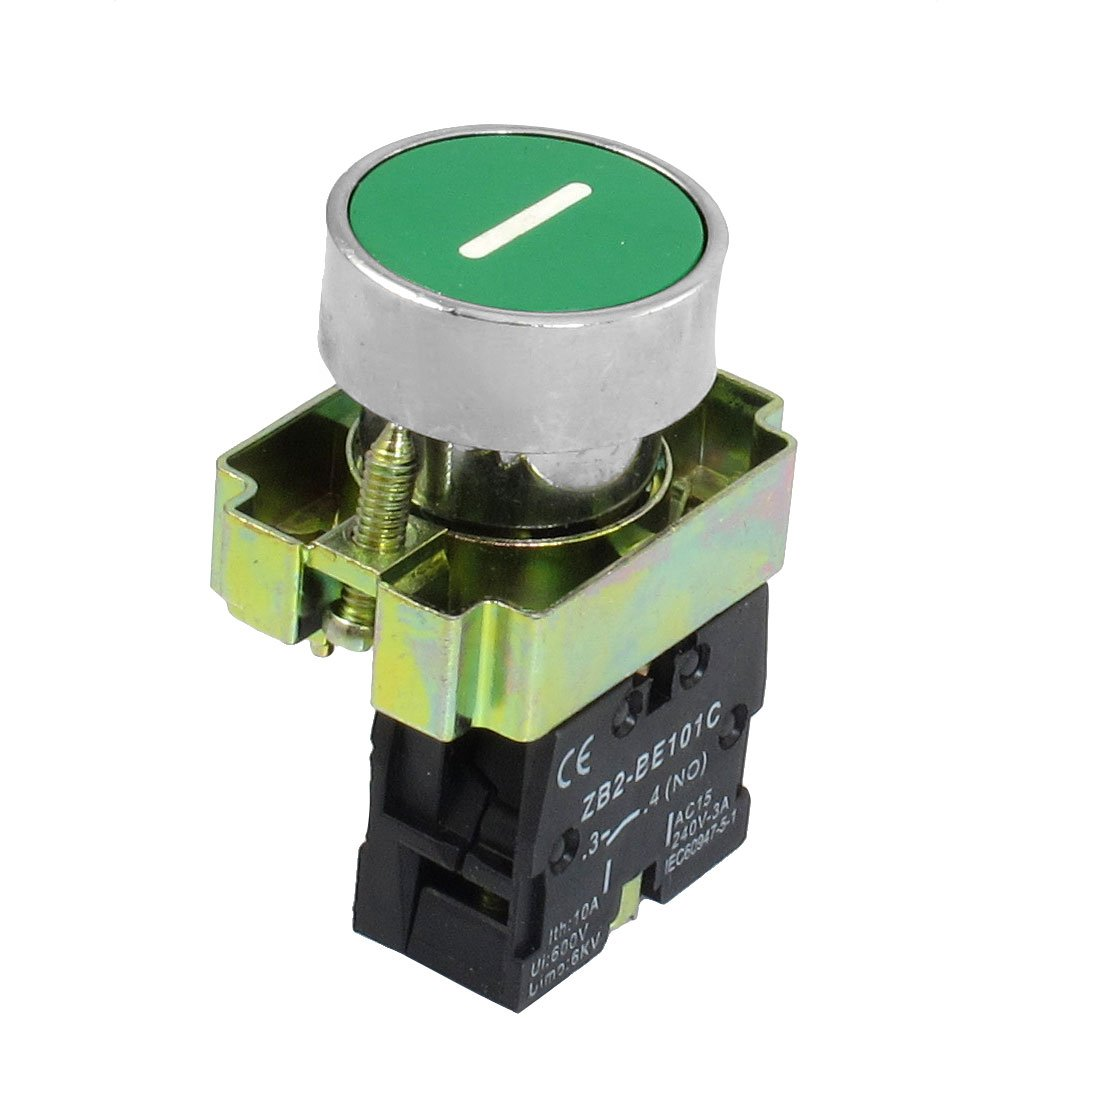 uxcell 1 NO N/O Momentary Push Button Switch, 600V 10A ZB2-BA3311, 22 mm, Green Sign